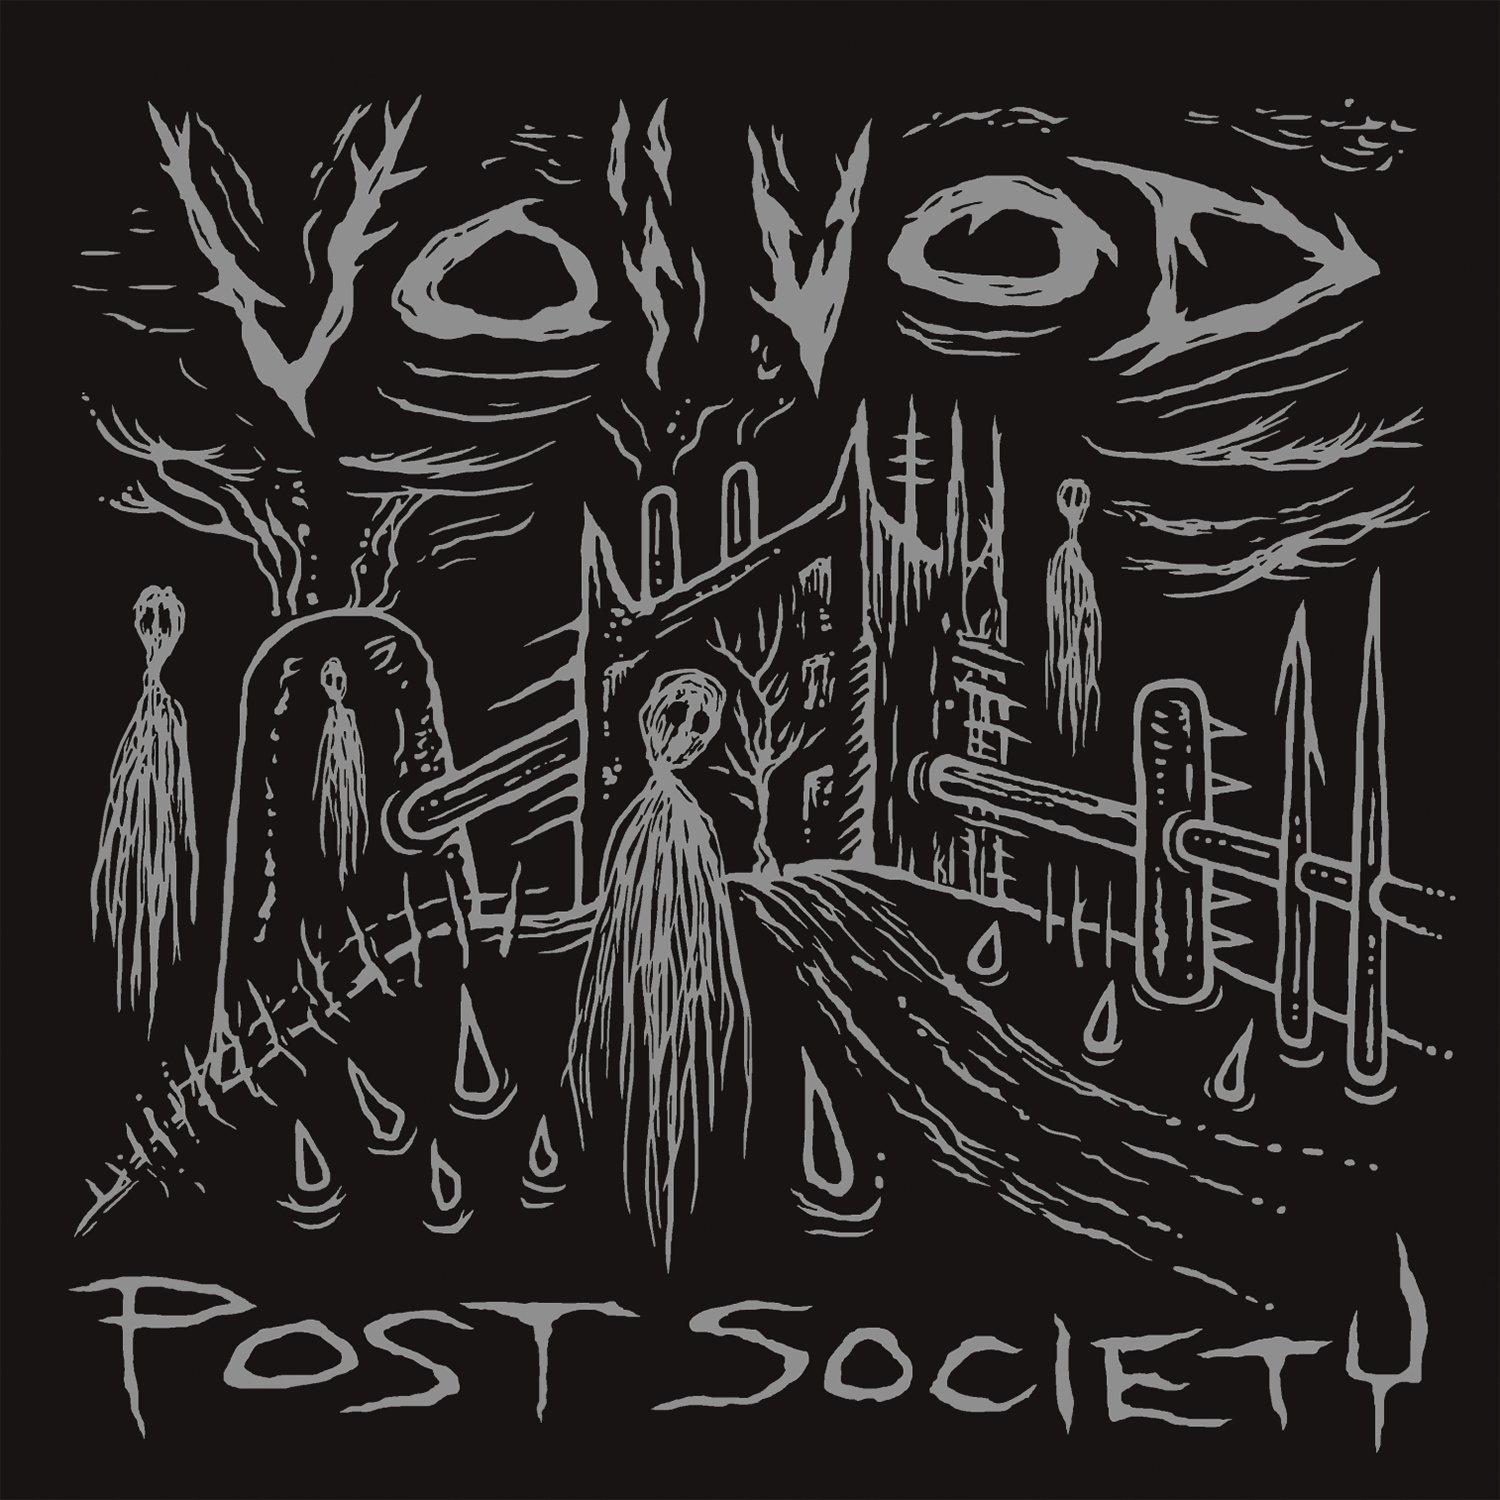 Post Society EP (Ed. Lda)